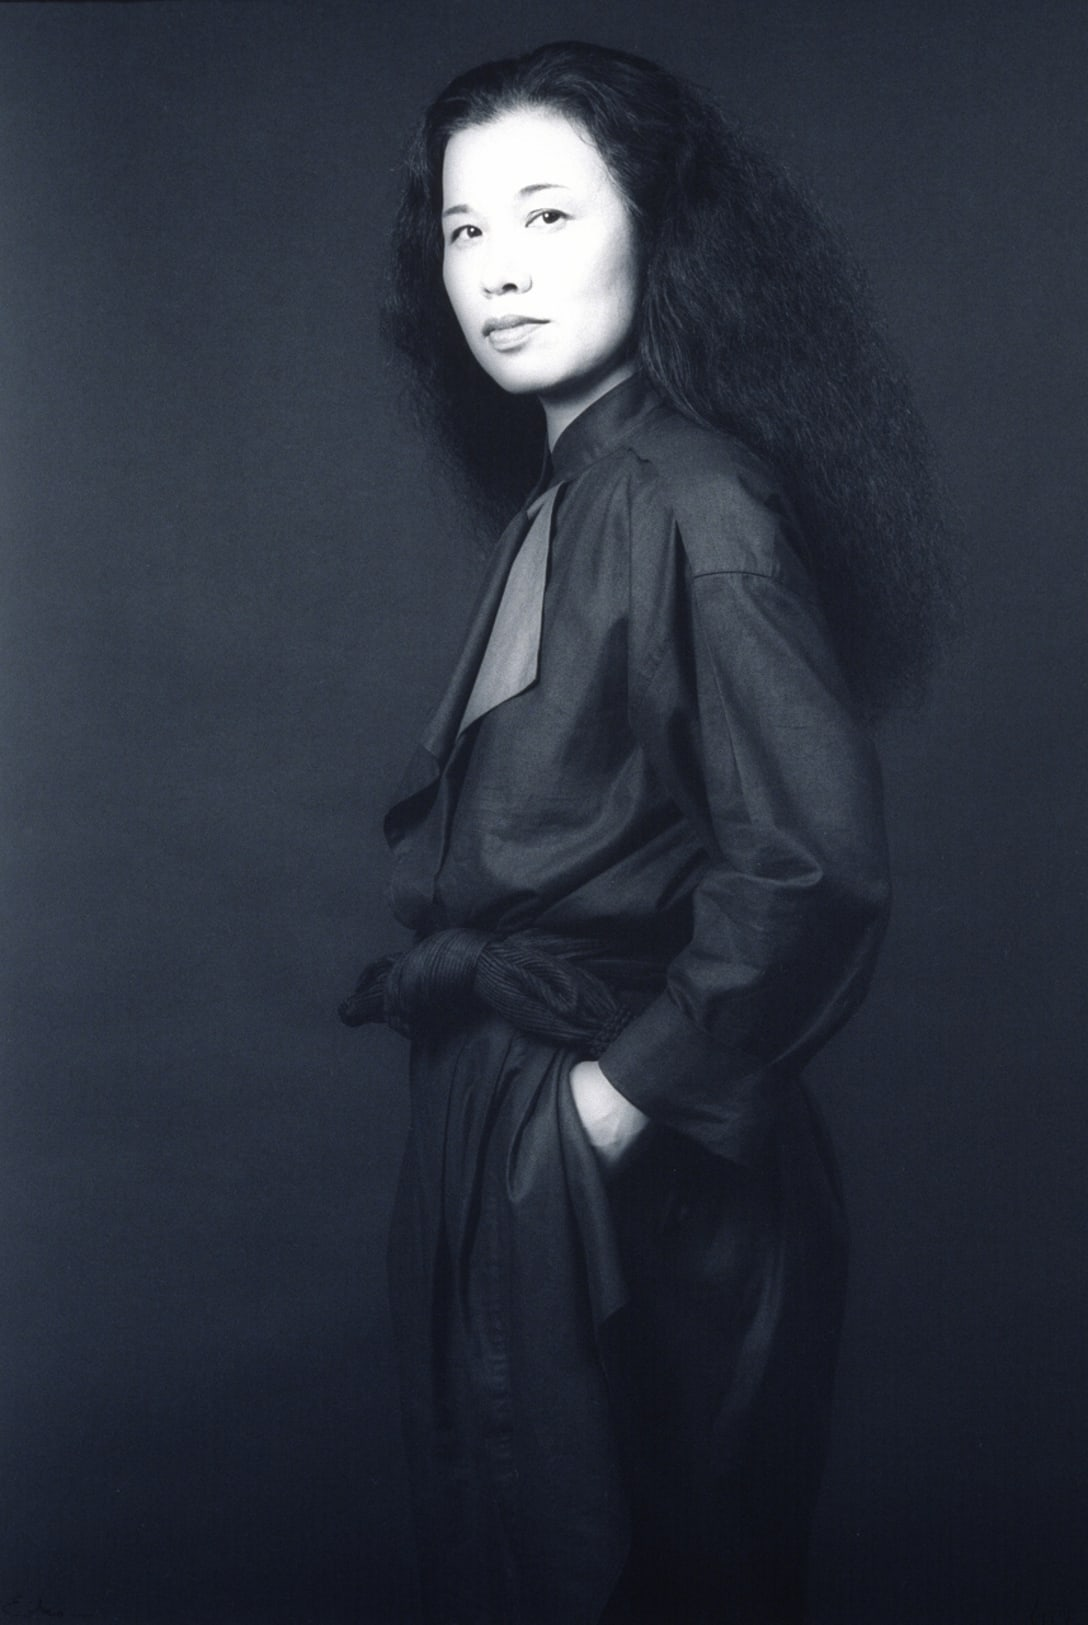 石岡瑛子 1983年 Image by Robert Mapplethorpe ©Robert Mapplethorpe Foundation. Used by permission.